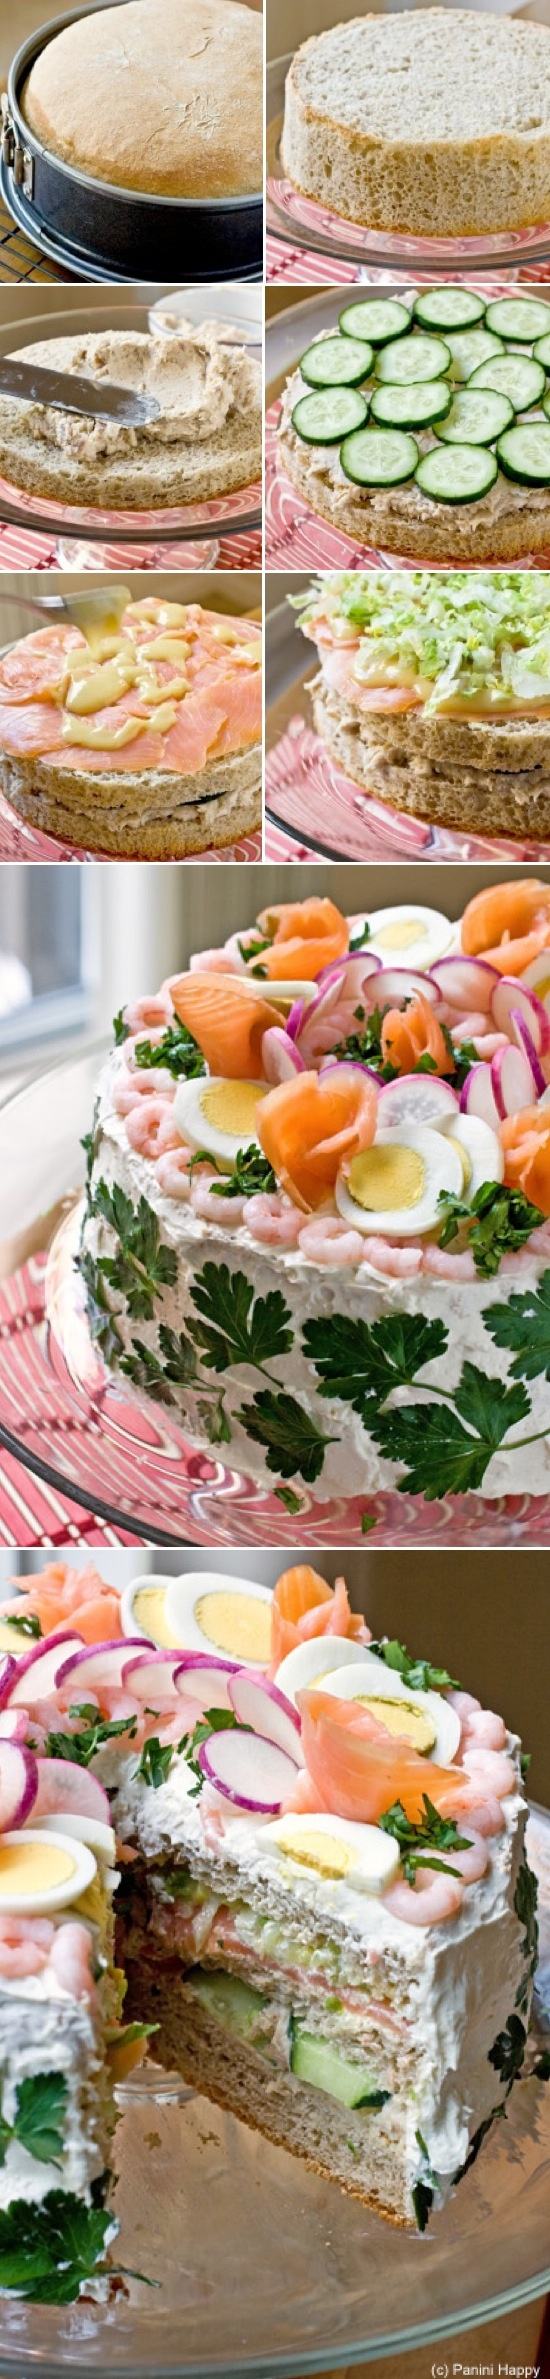 Sandwich Salmon Cucumber Egg Cake Recipe by Cupcakepedia, salmon, eggs, vegetable, sandwich, lunch, food